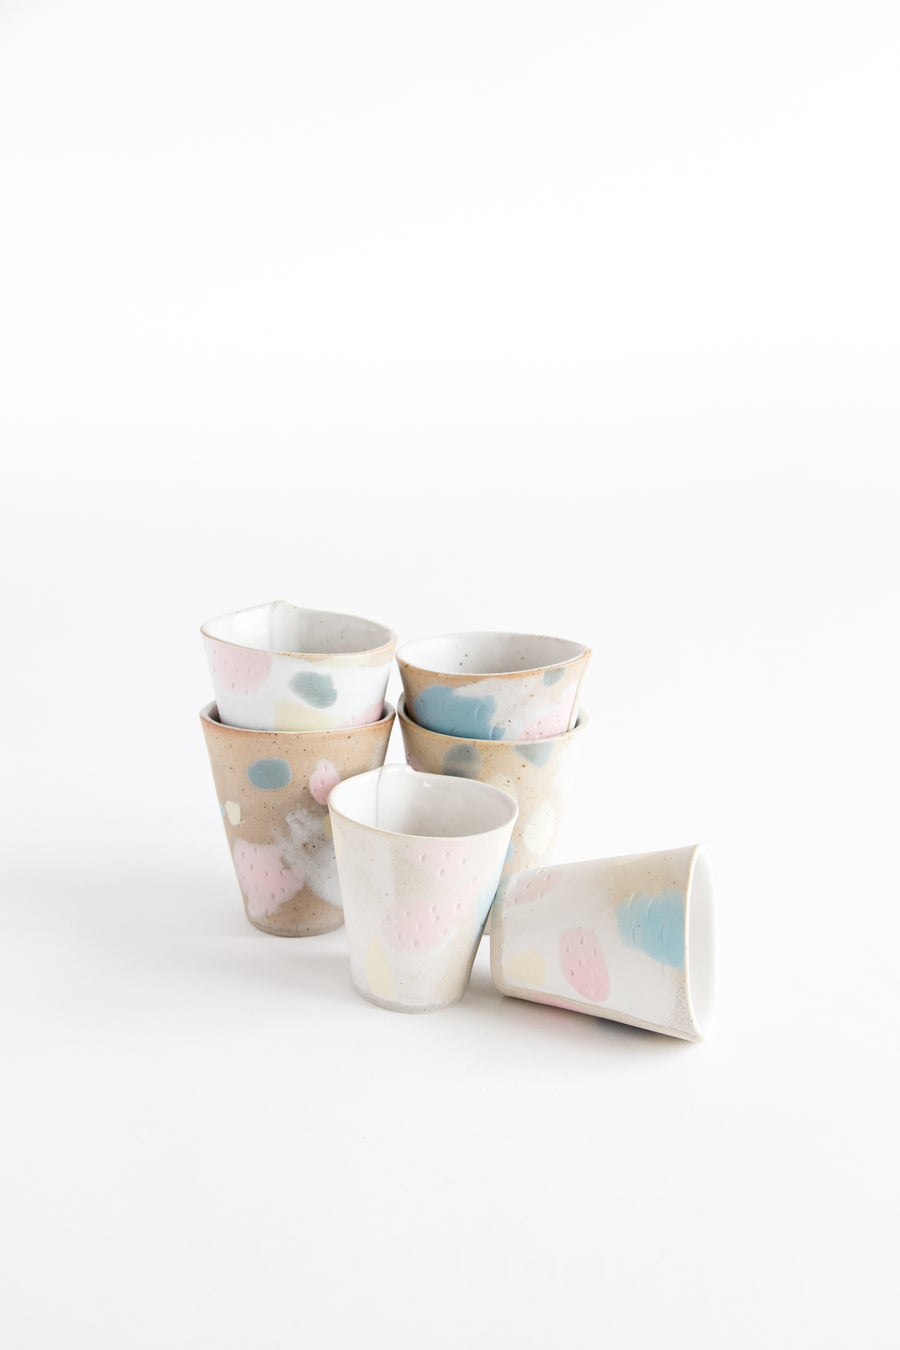 Image of Pastel Primary Tumblers